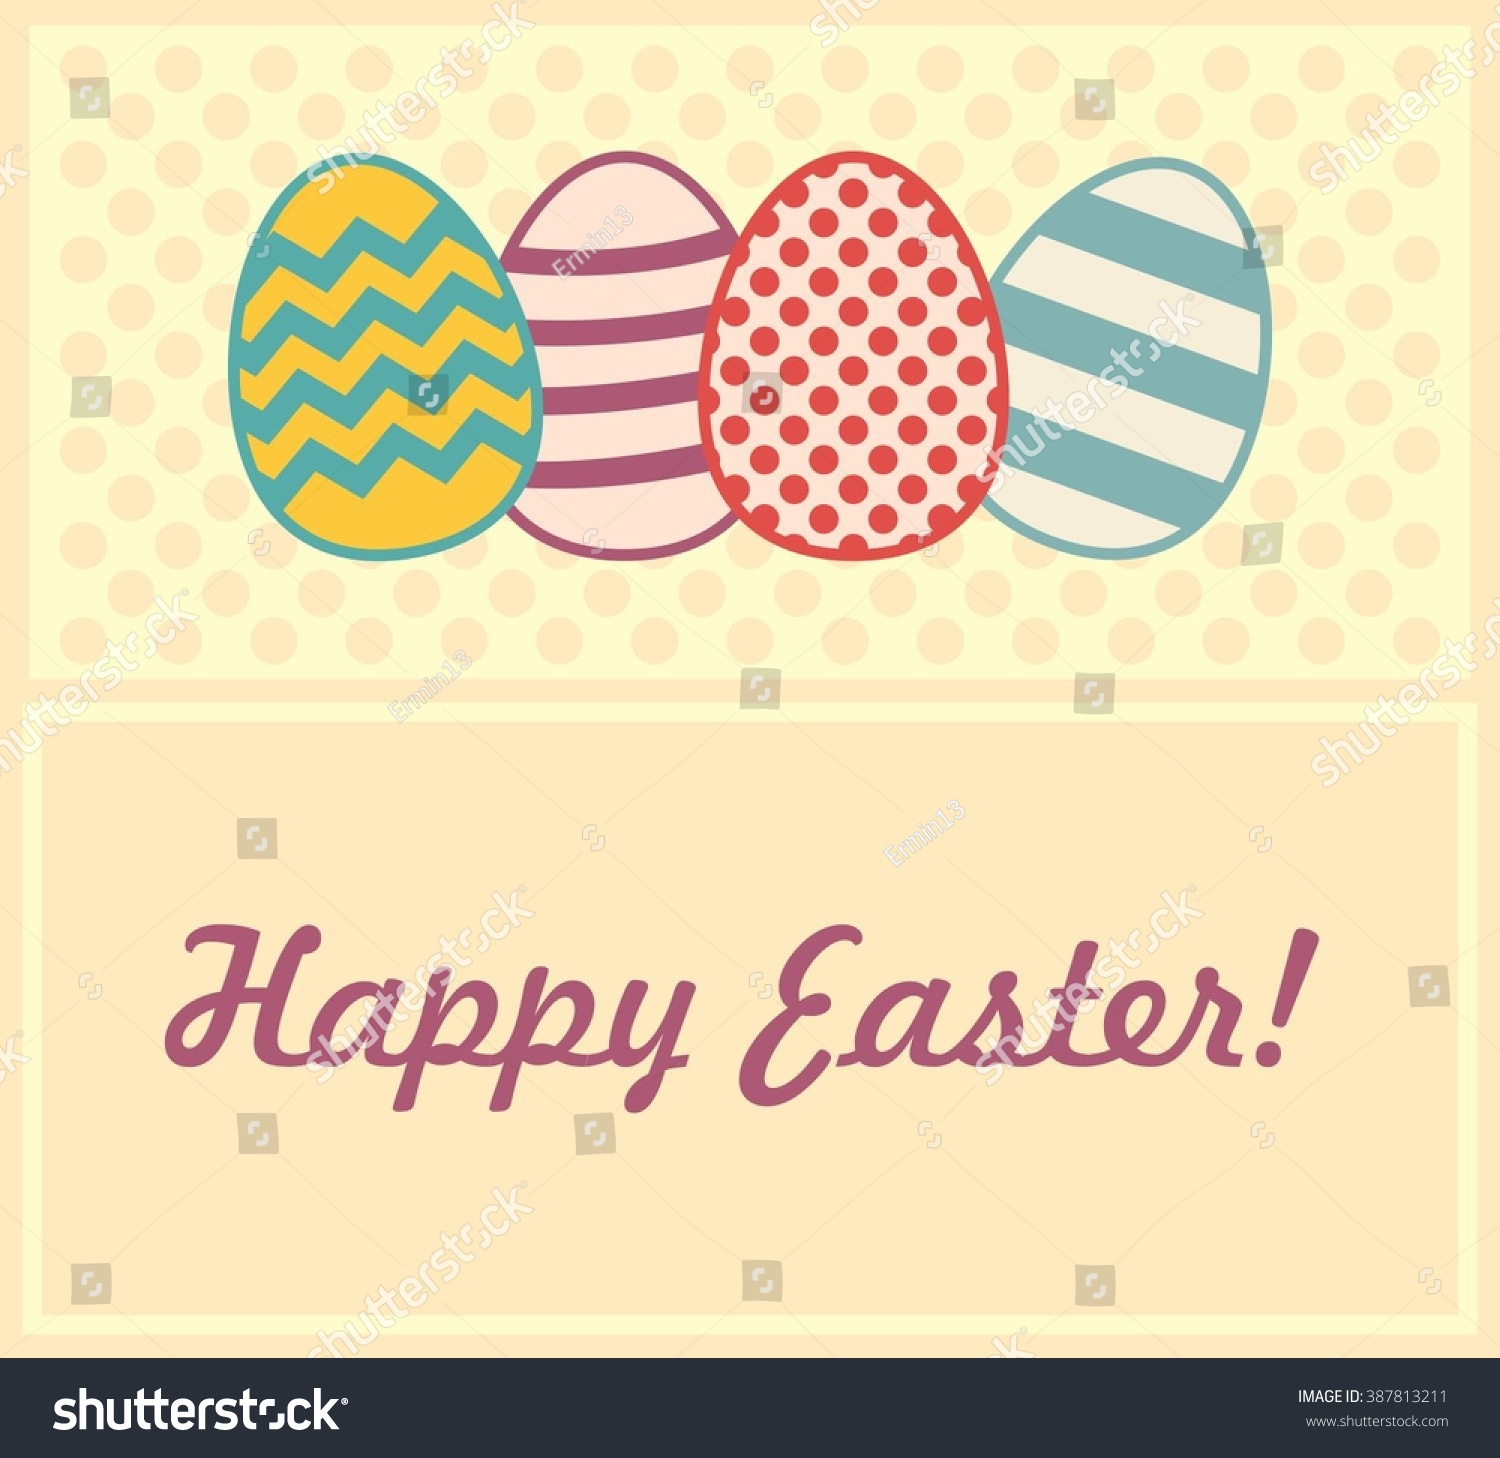 Easter egg banner gift card dotted stock vector 387813211 the easter egg banner gift card with dotted background letters and eggs with different negle Choice Image